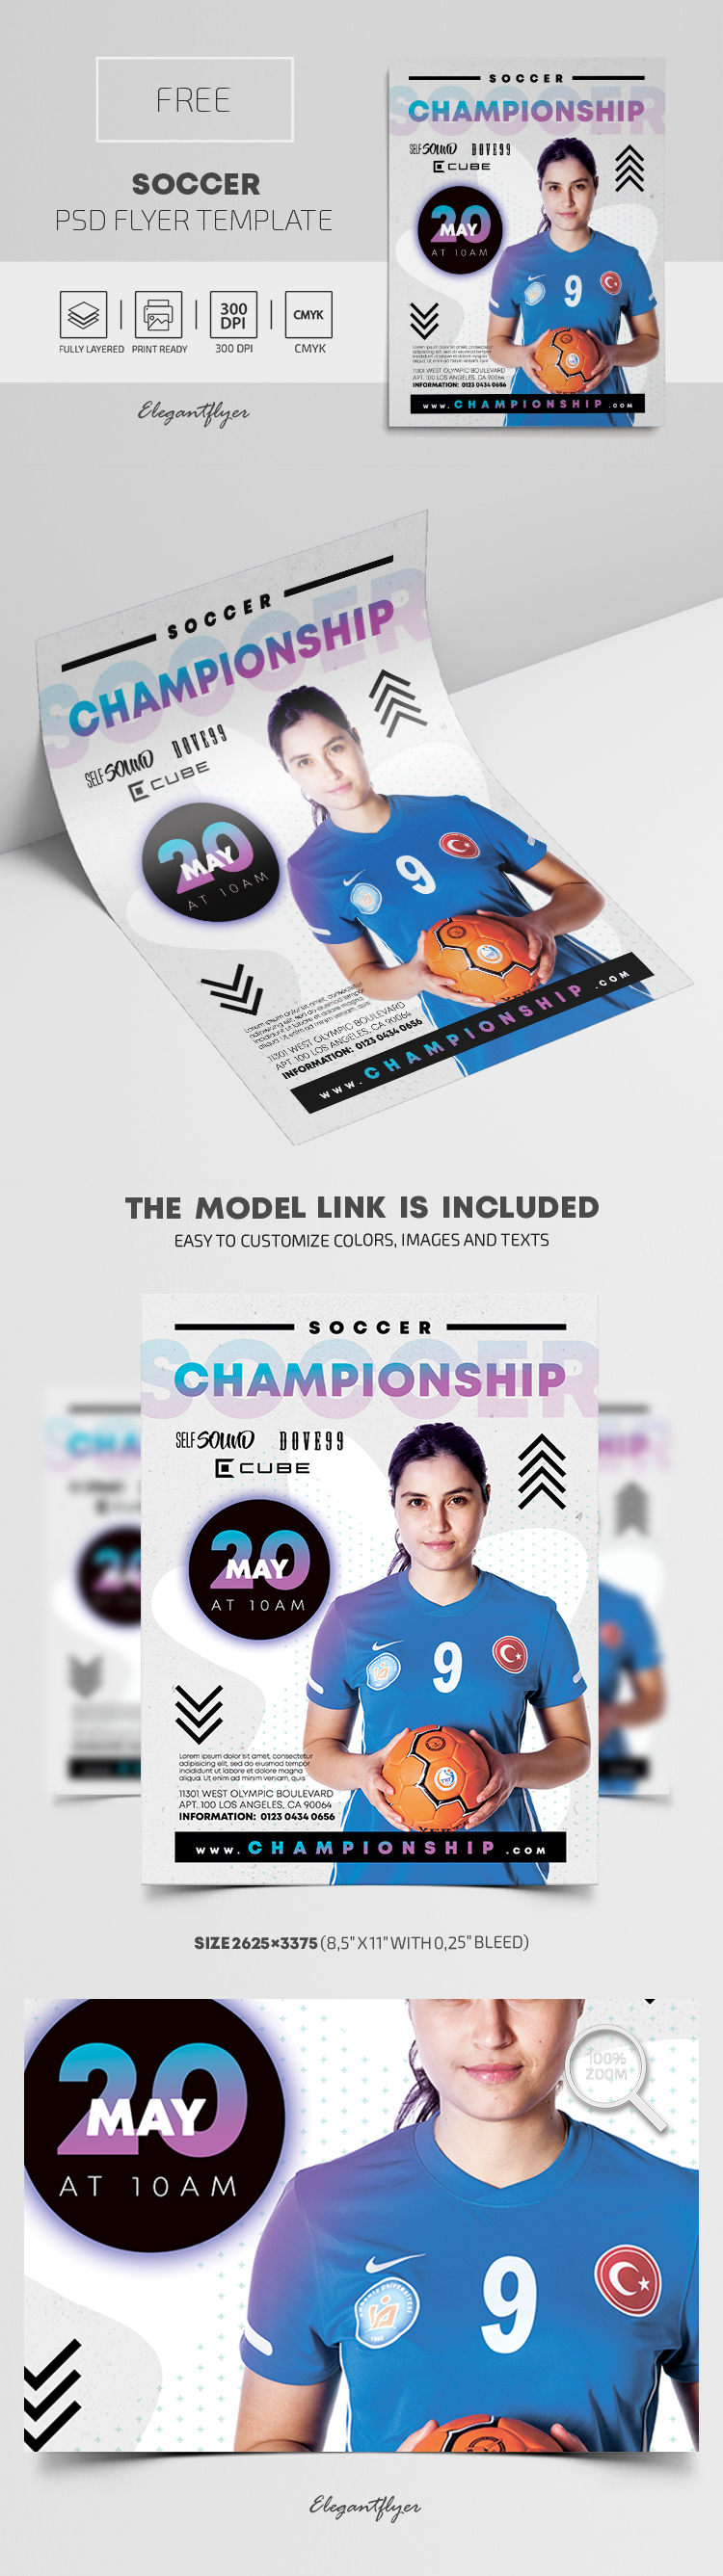 Soccer – Free PSD Flyer Template